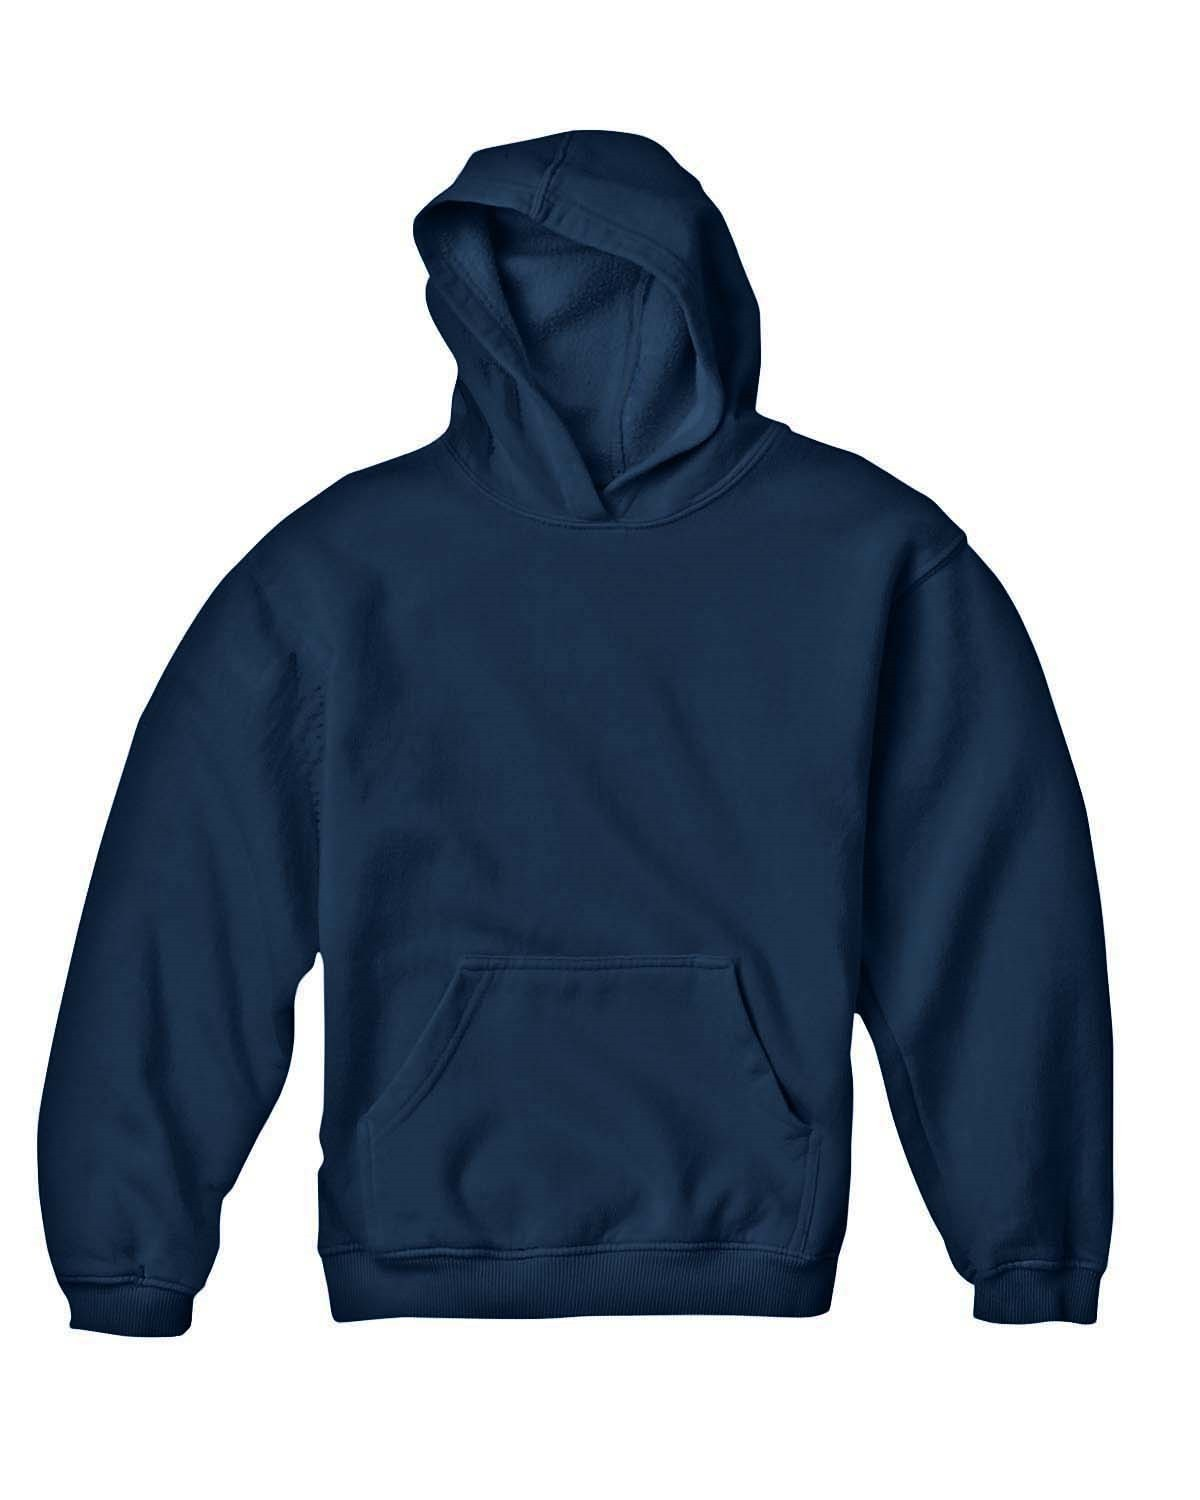 C8755 Comfort Colors Drop Ship NAVY